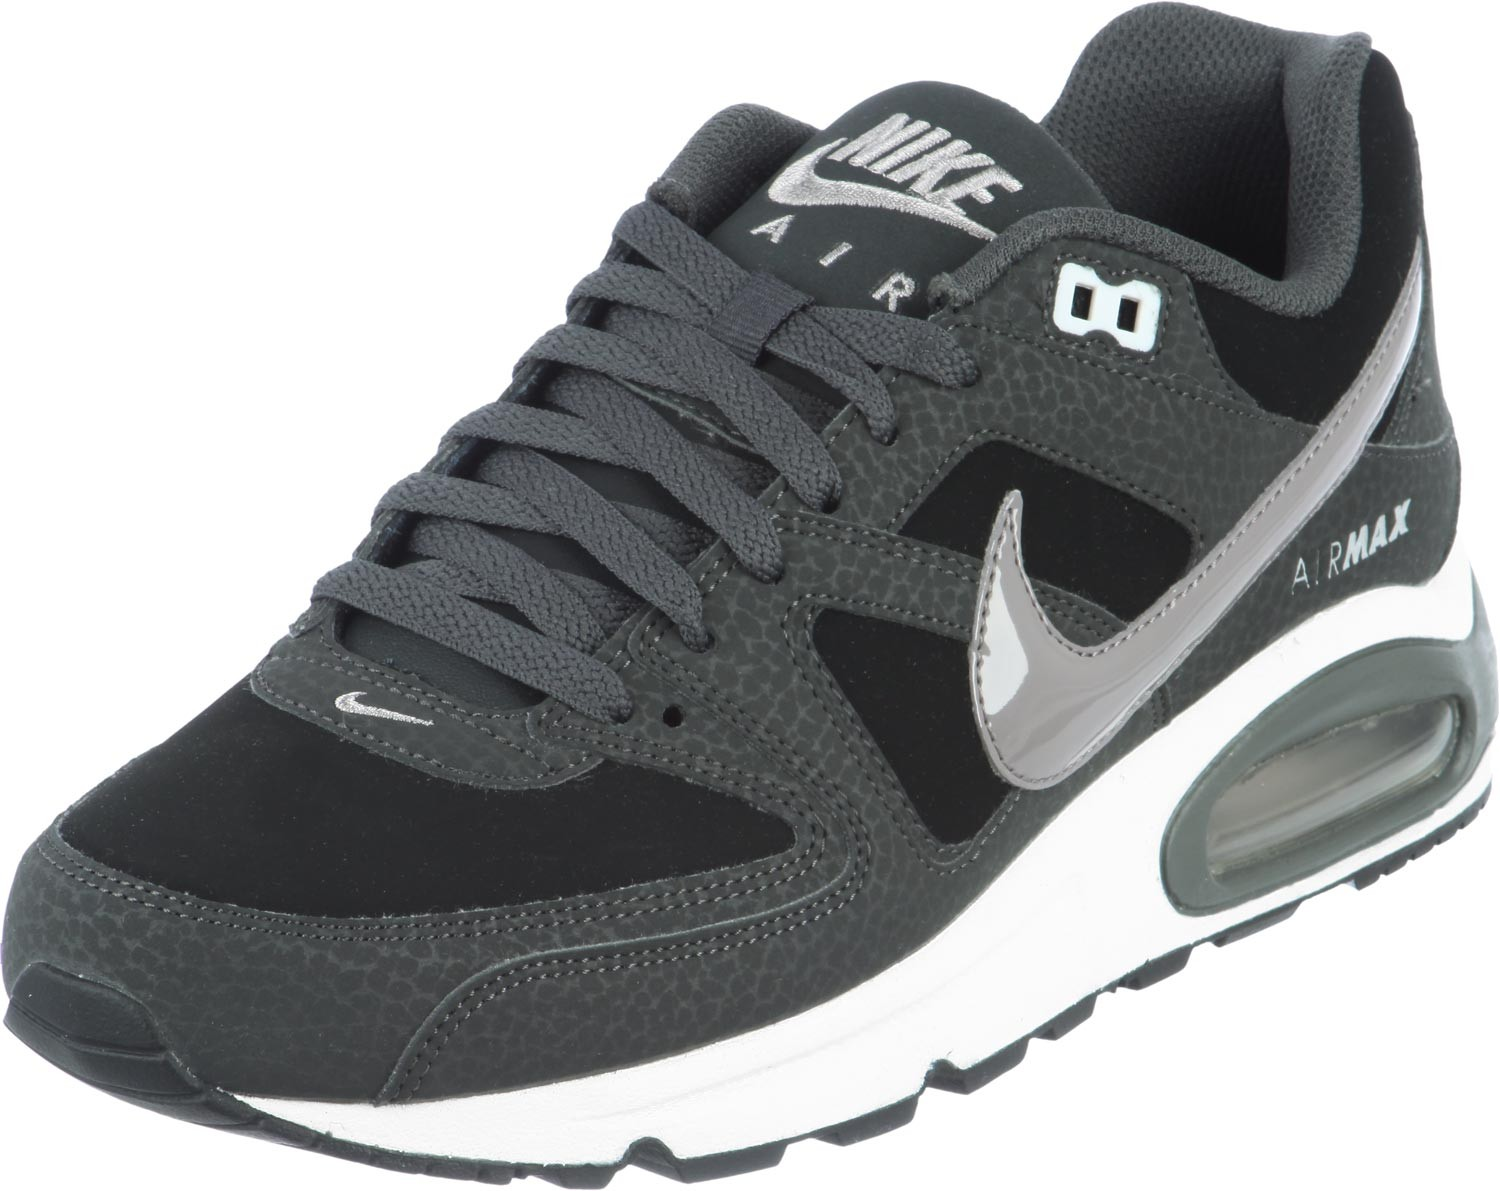 save off 3fec0 32595 Nike Pas Cher - Nike Air Max Command Homme Na09129